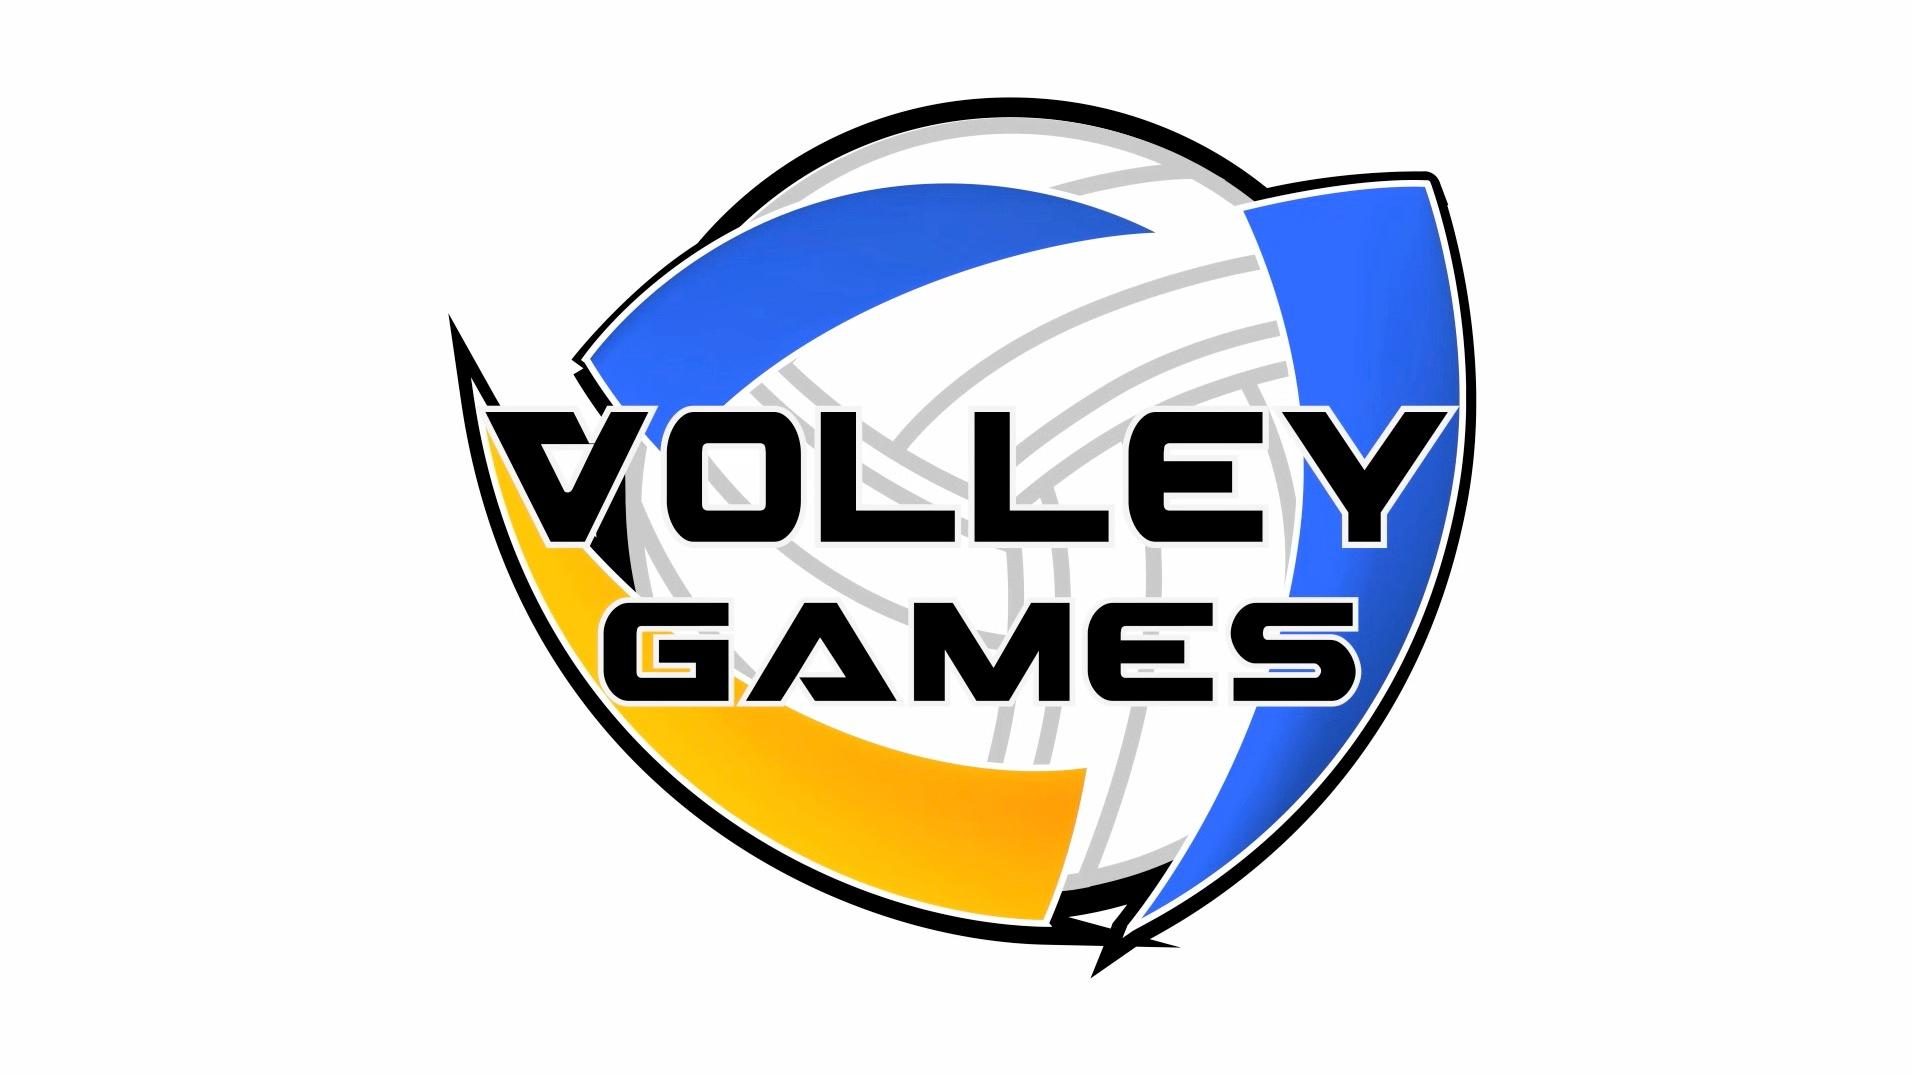 Volley Games - 17/02/17